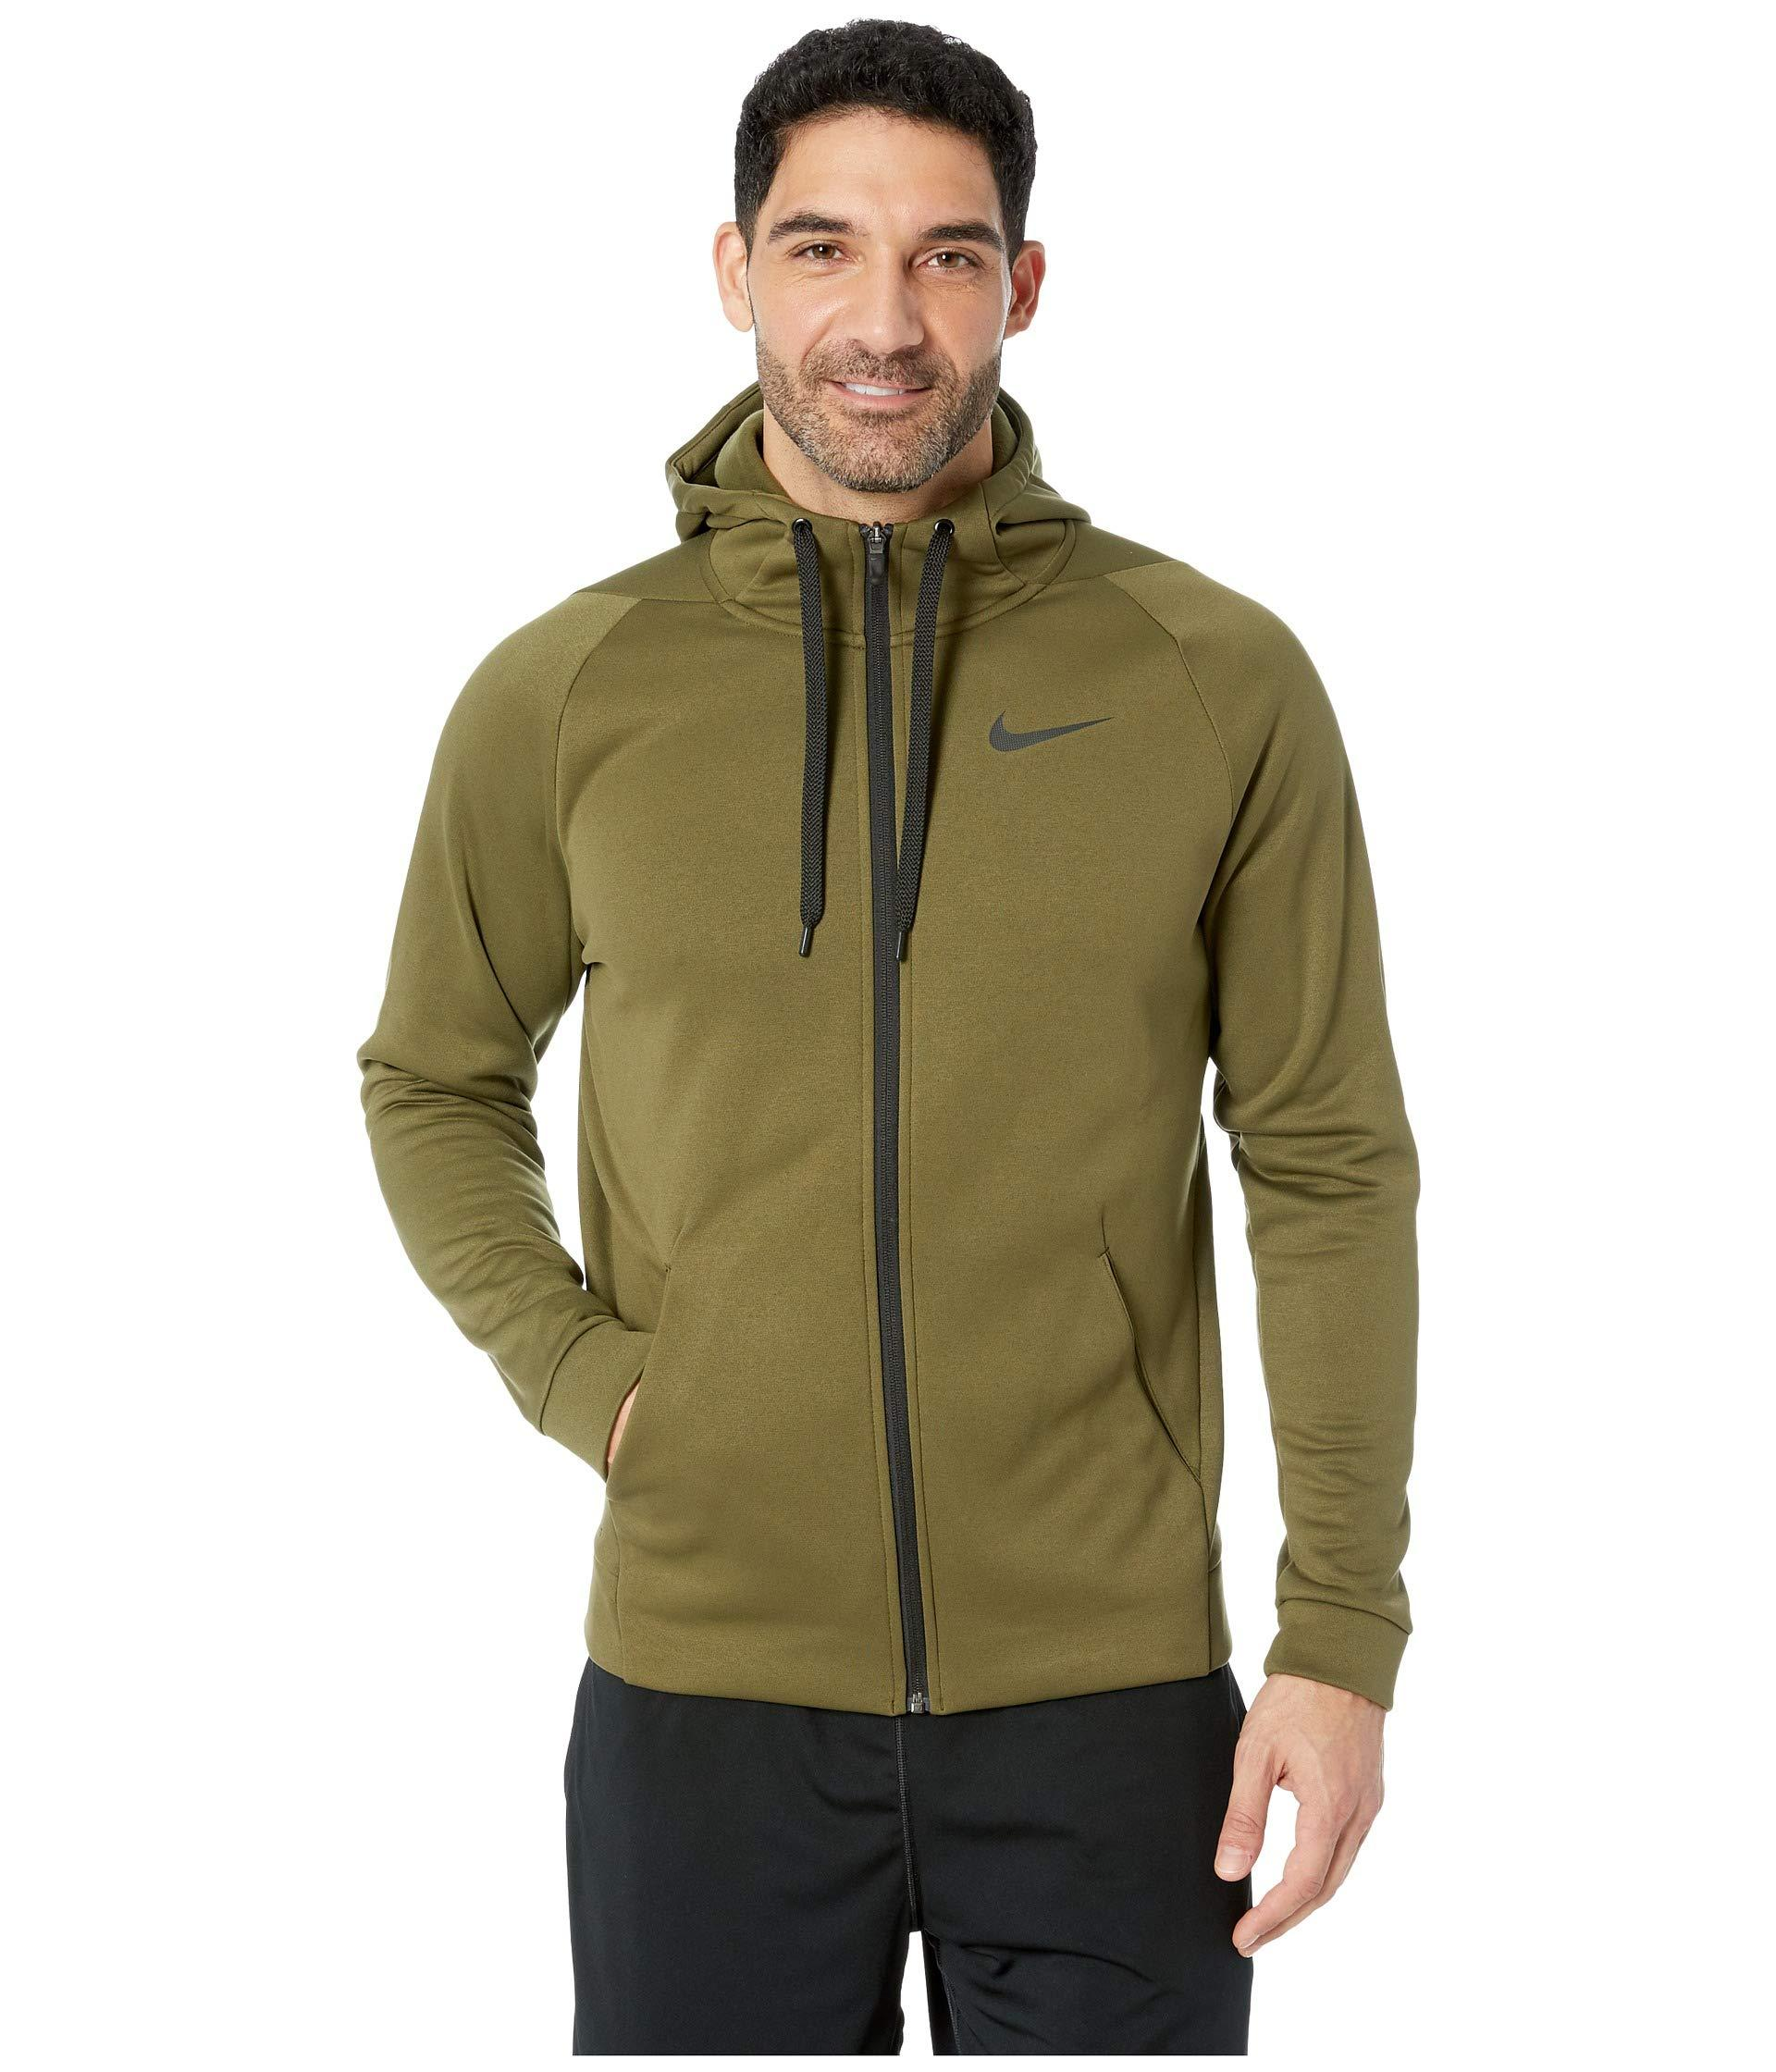 25a7a7cd027b7 Lyst - Nike Dri-fit Therma Men s Full-zip Training Hoodie in Green ...